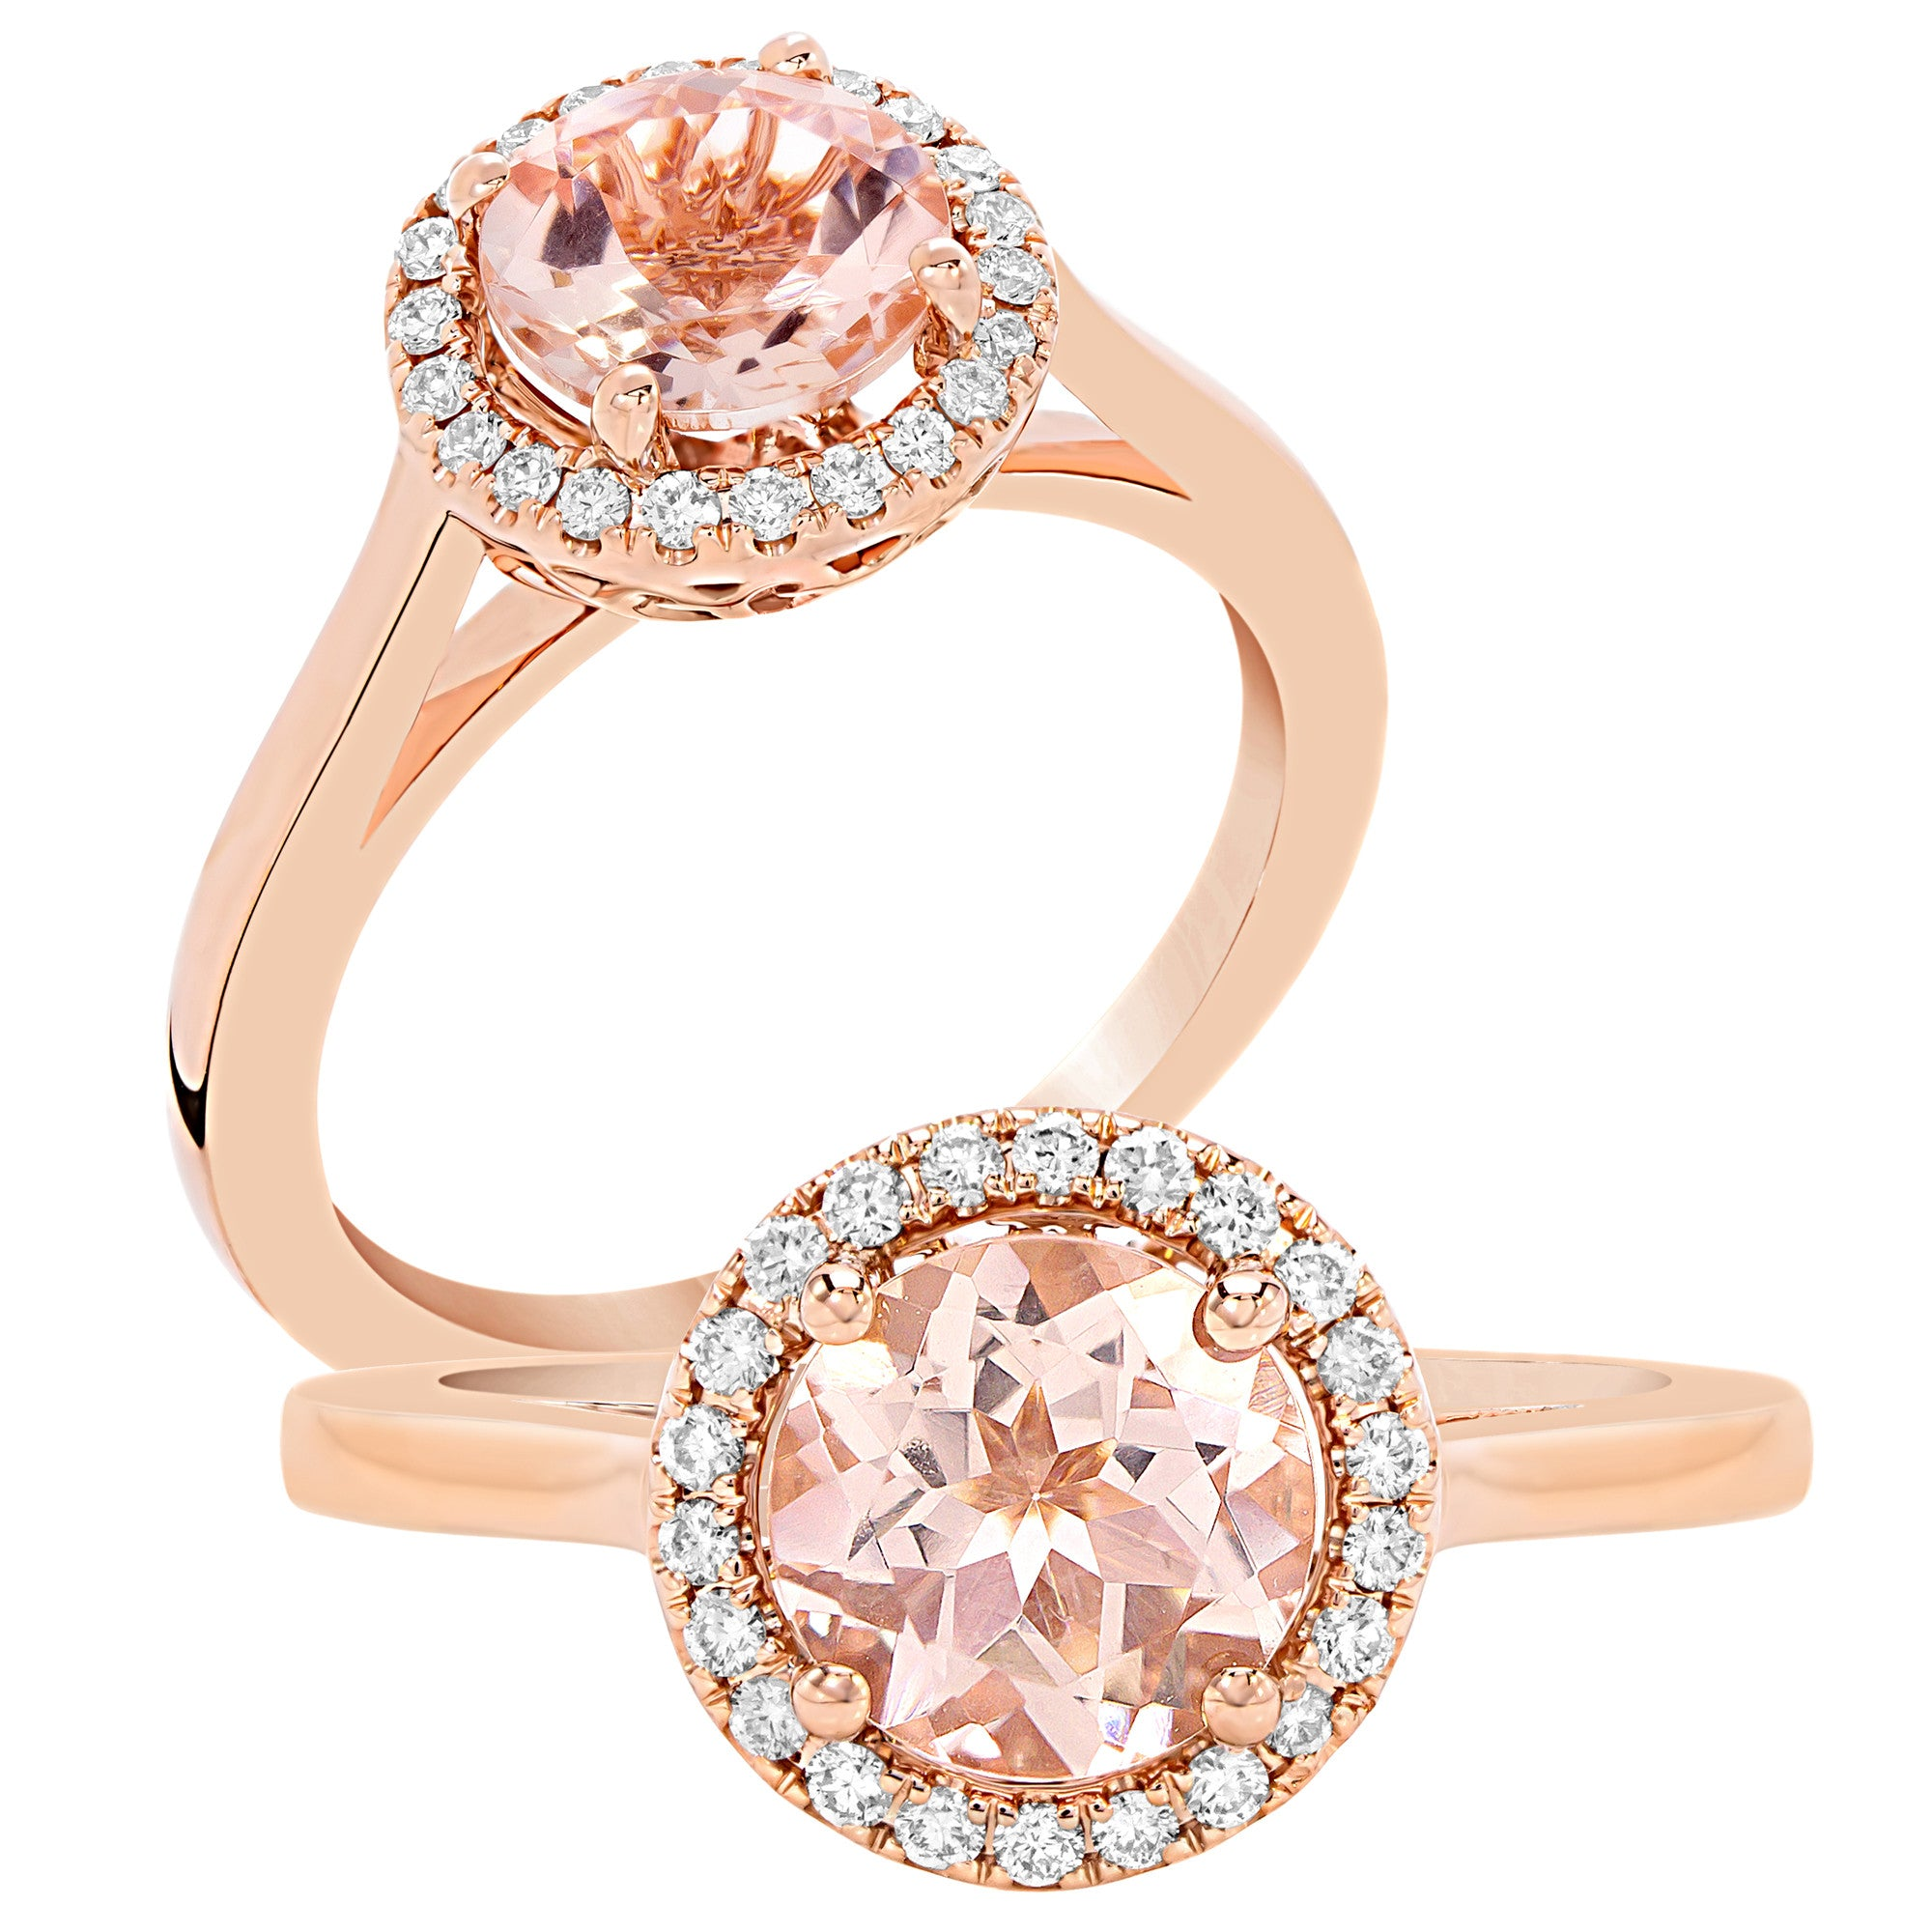 ring in rings with vanilla wedding tw vian chocolate le strawberry gold morganite diamonds and